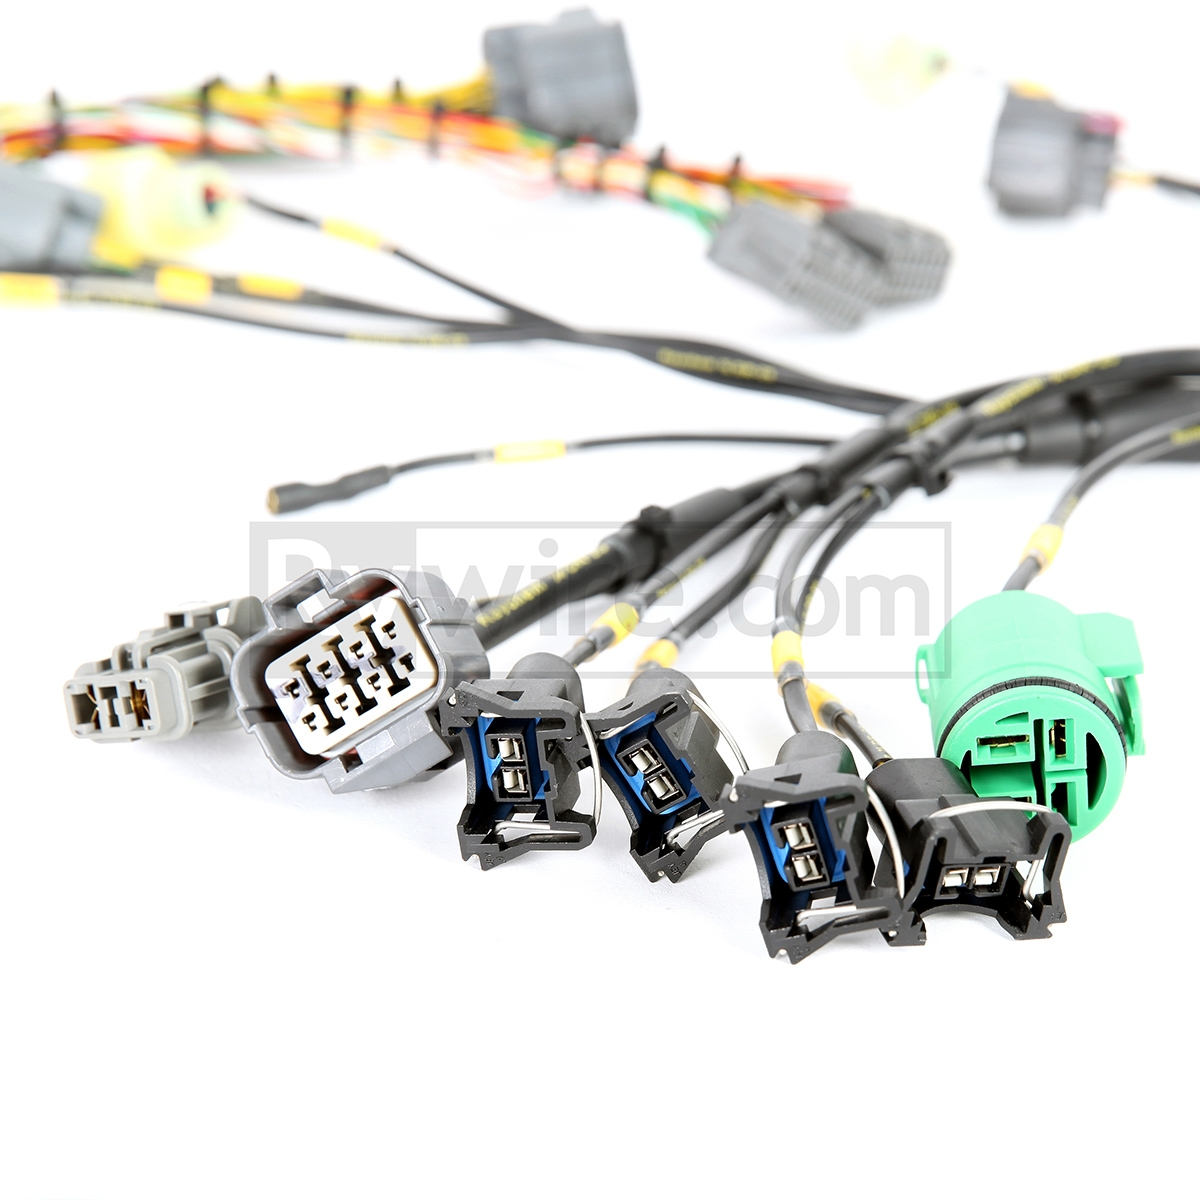 B1 Milspec 3?1402488654 obd1 mil spec d & b series tucked engine harness honda wiring harness connectors at webbmarketing.co